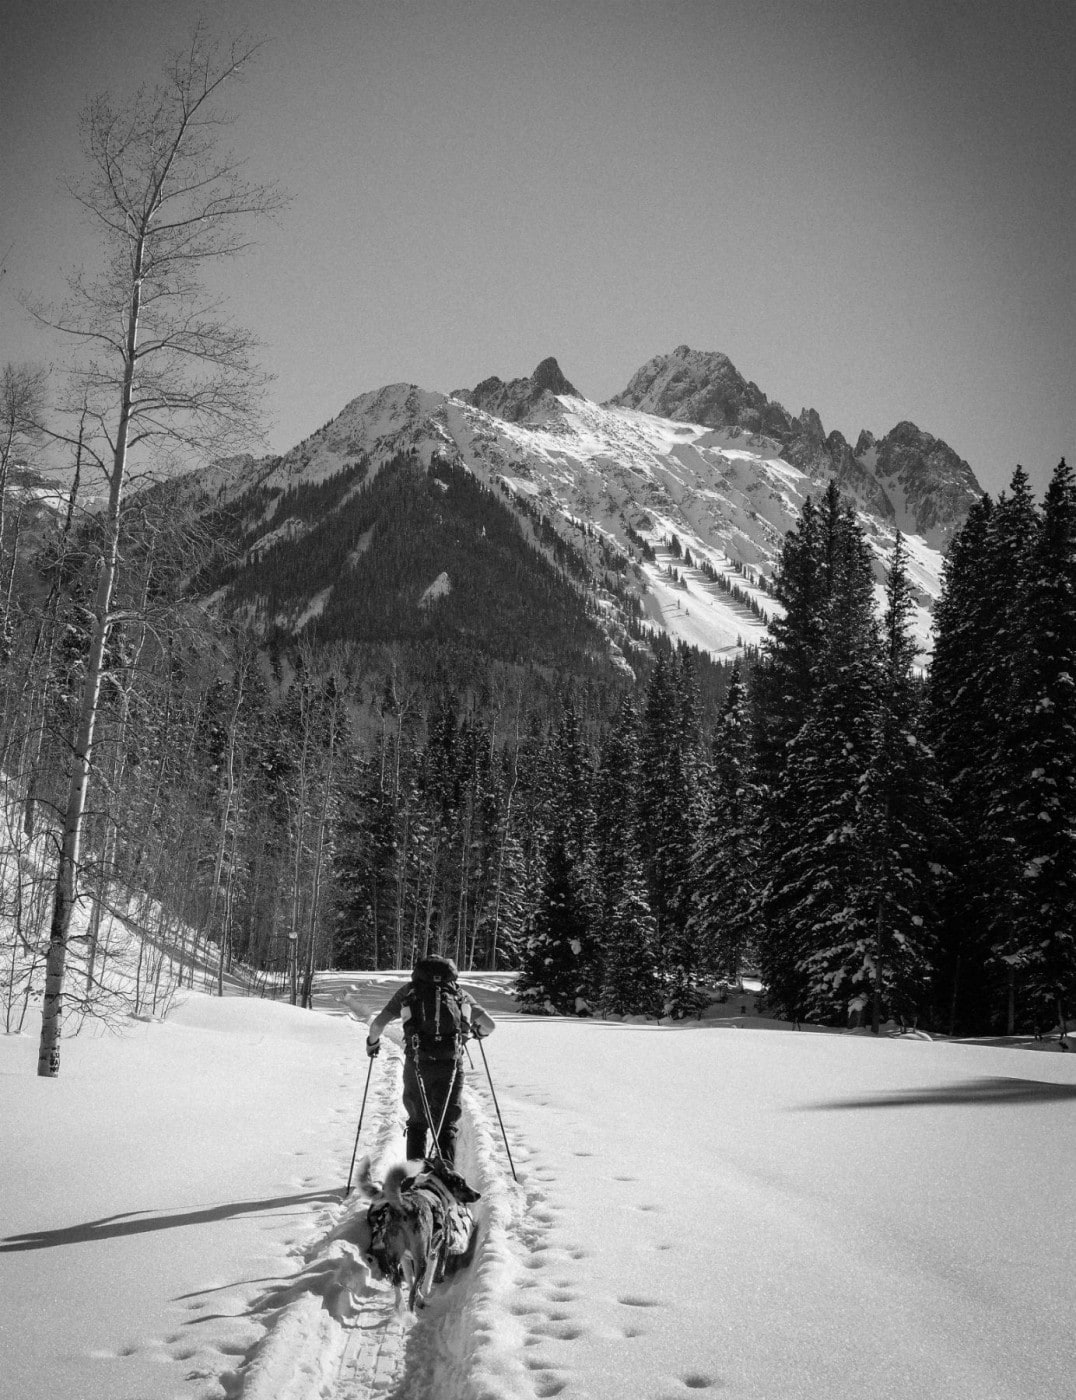 Backcountry Skiing while Pregnant - Gear